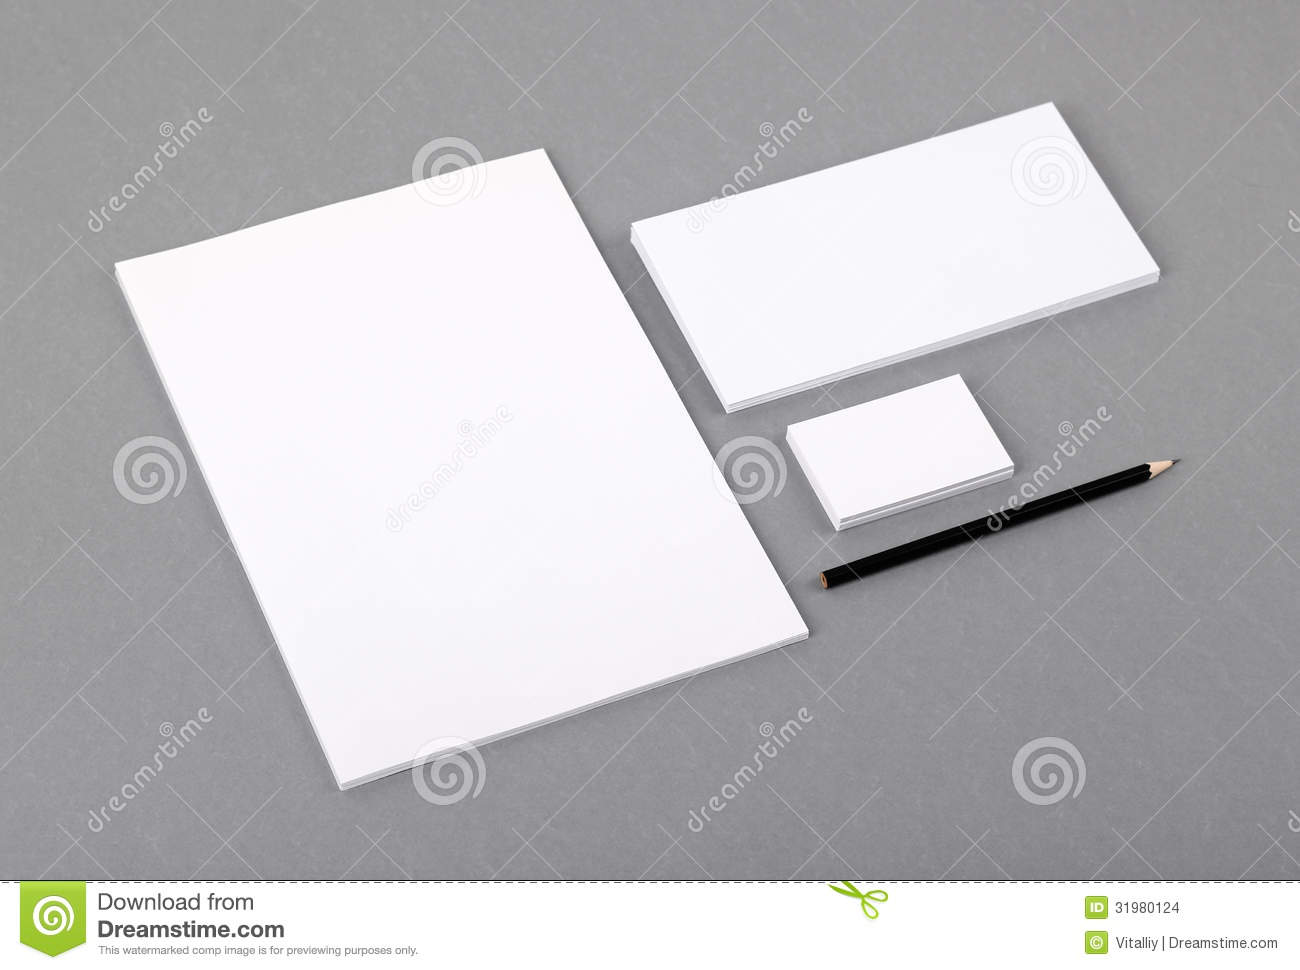 Blank Basic Stationery Letterhead Flat Business Card Envelope - Blank template for business cards